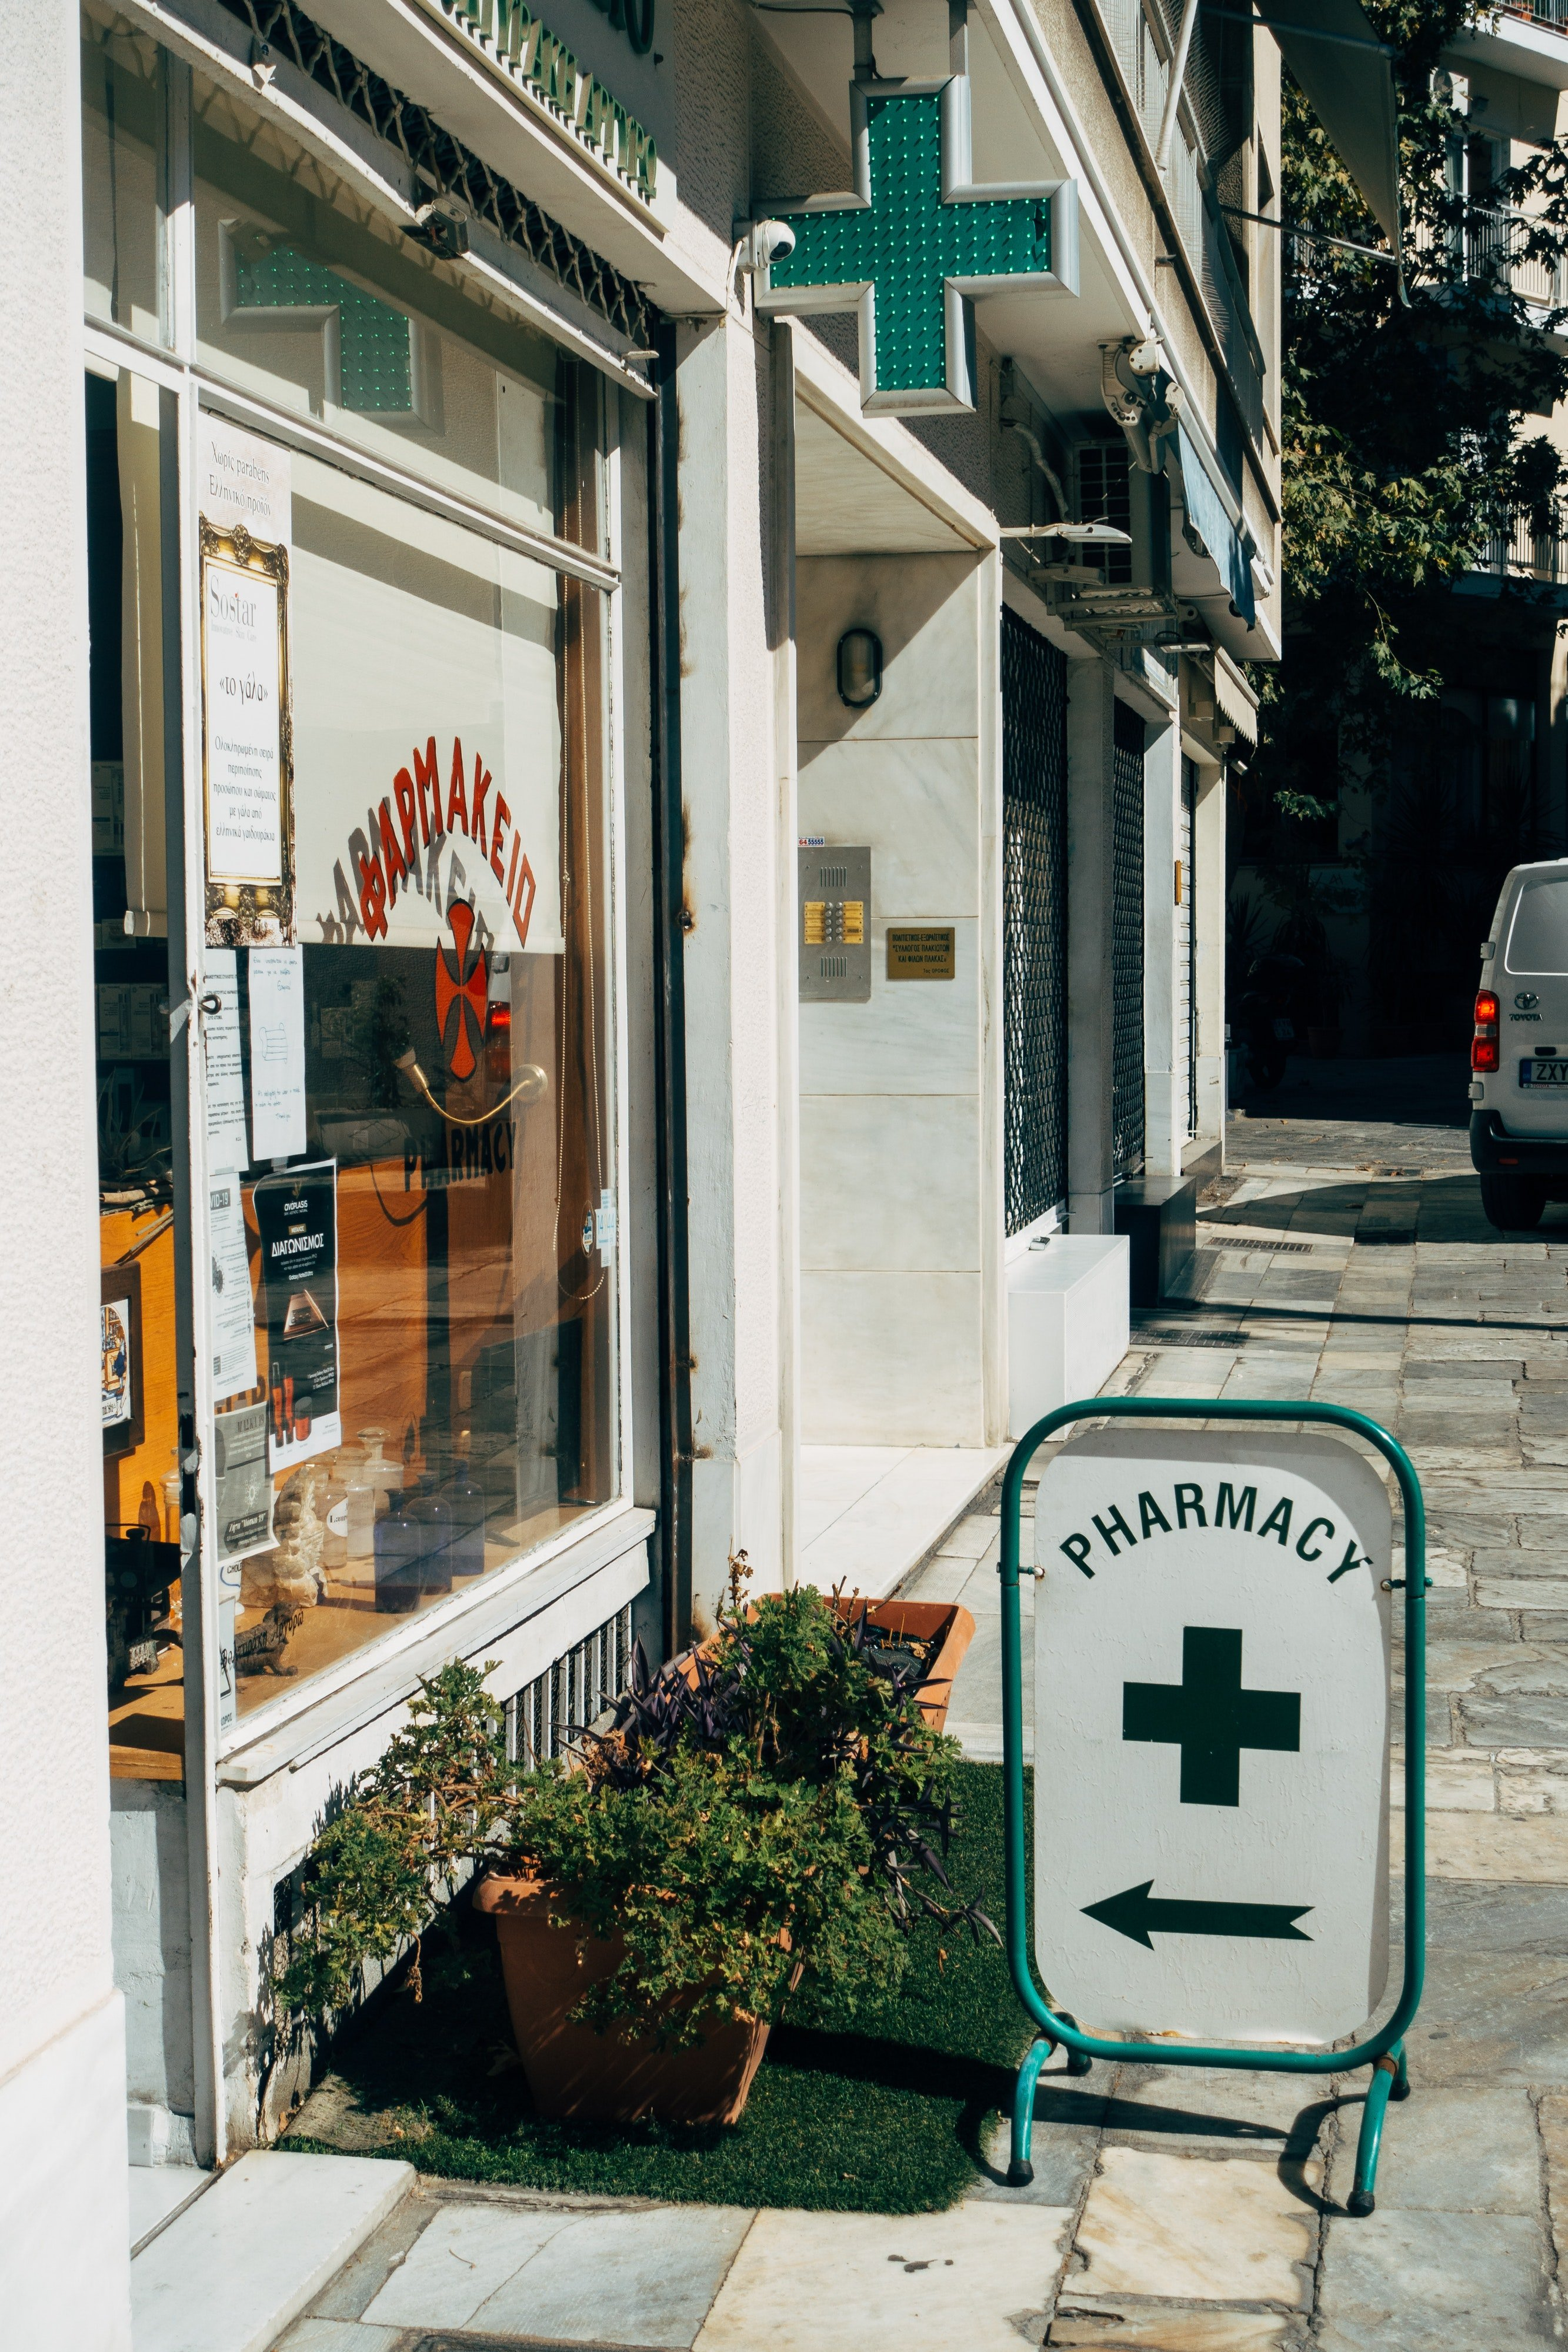 A pharmacy by the road.   Photo: Pexels/Markus Winkler